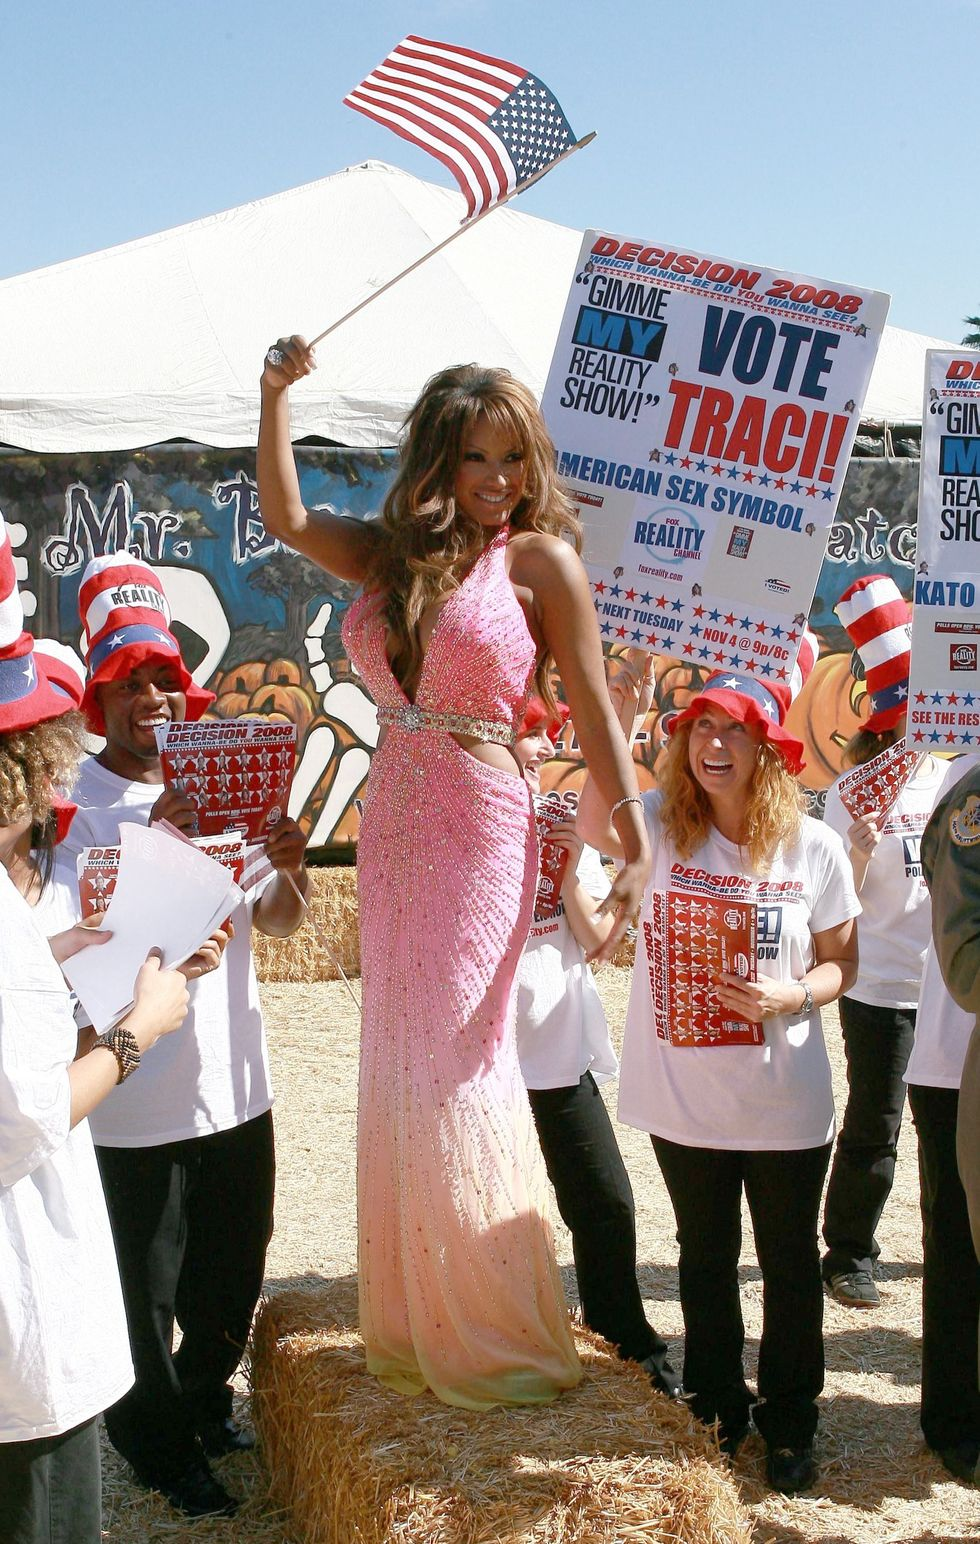 traci-bingham-gimme-my-reality-show-campain-in-los-angeles-01